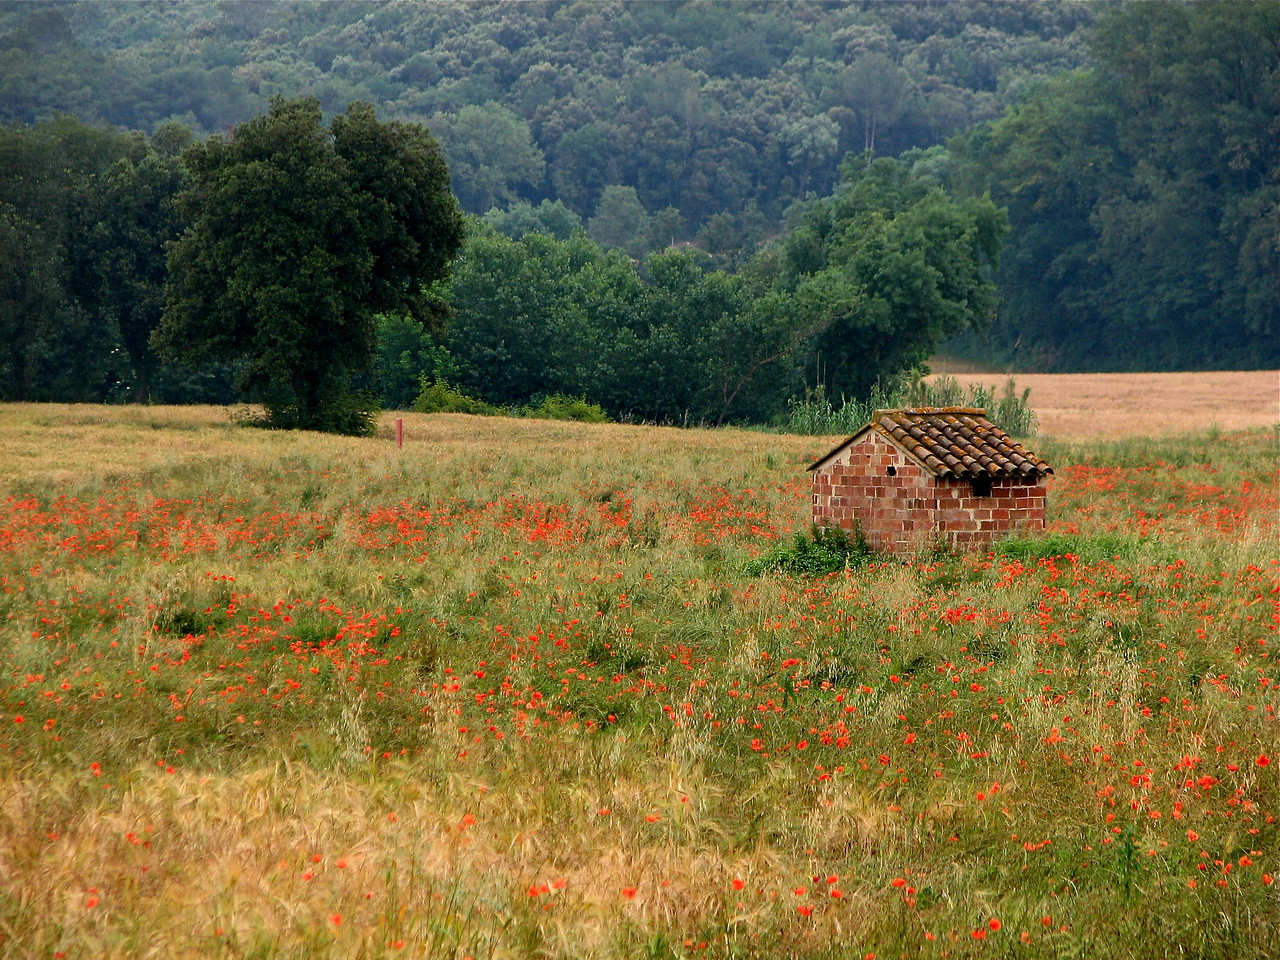 Poppies and an outbuilding in the countryside of Catalonia, Spain